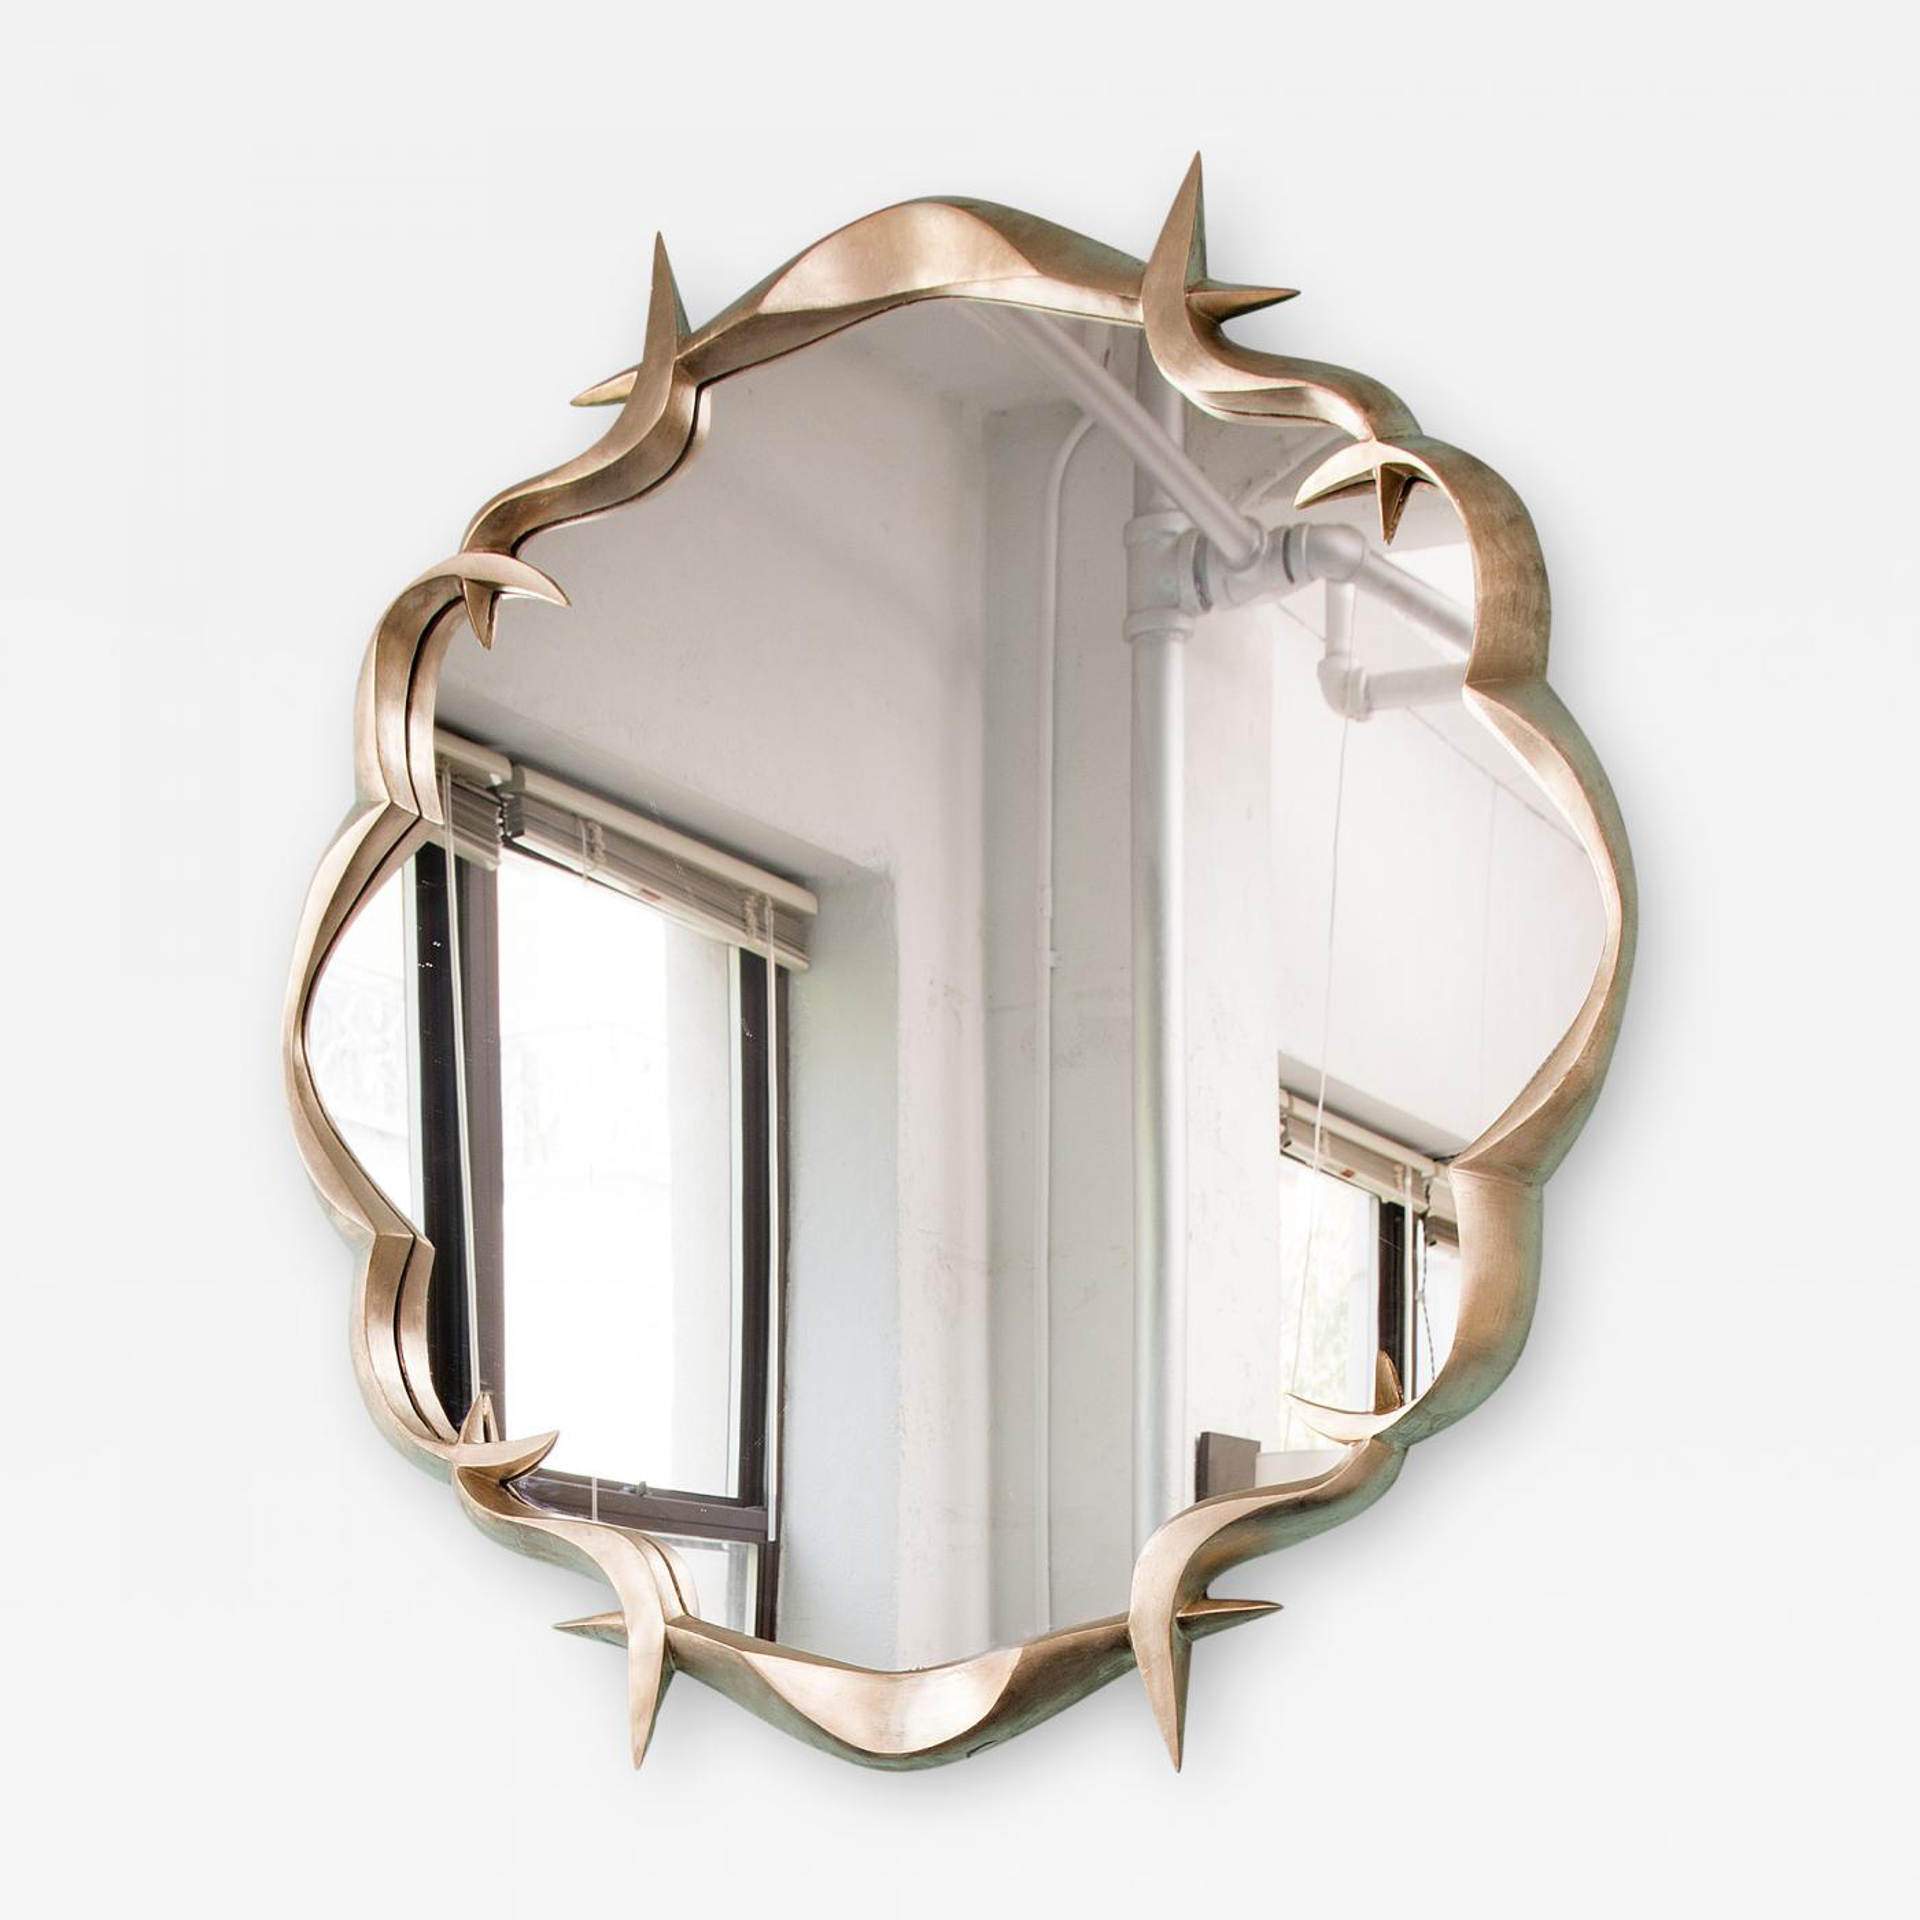 Round Mirror by Anasthasia Millot